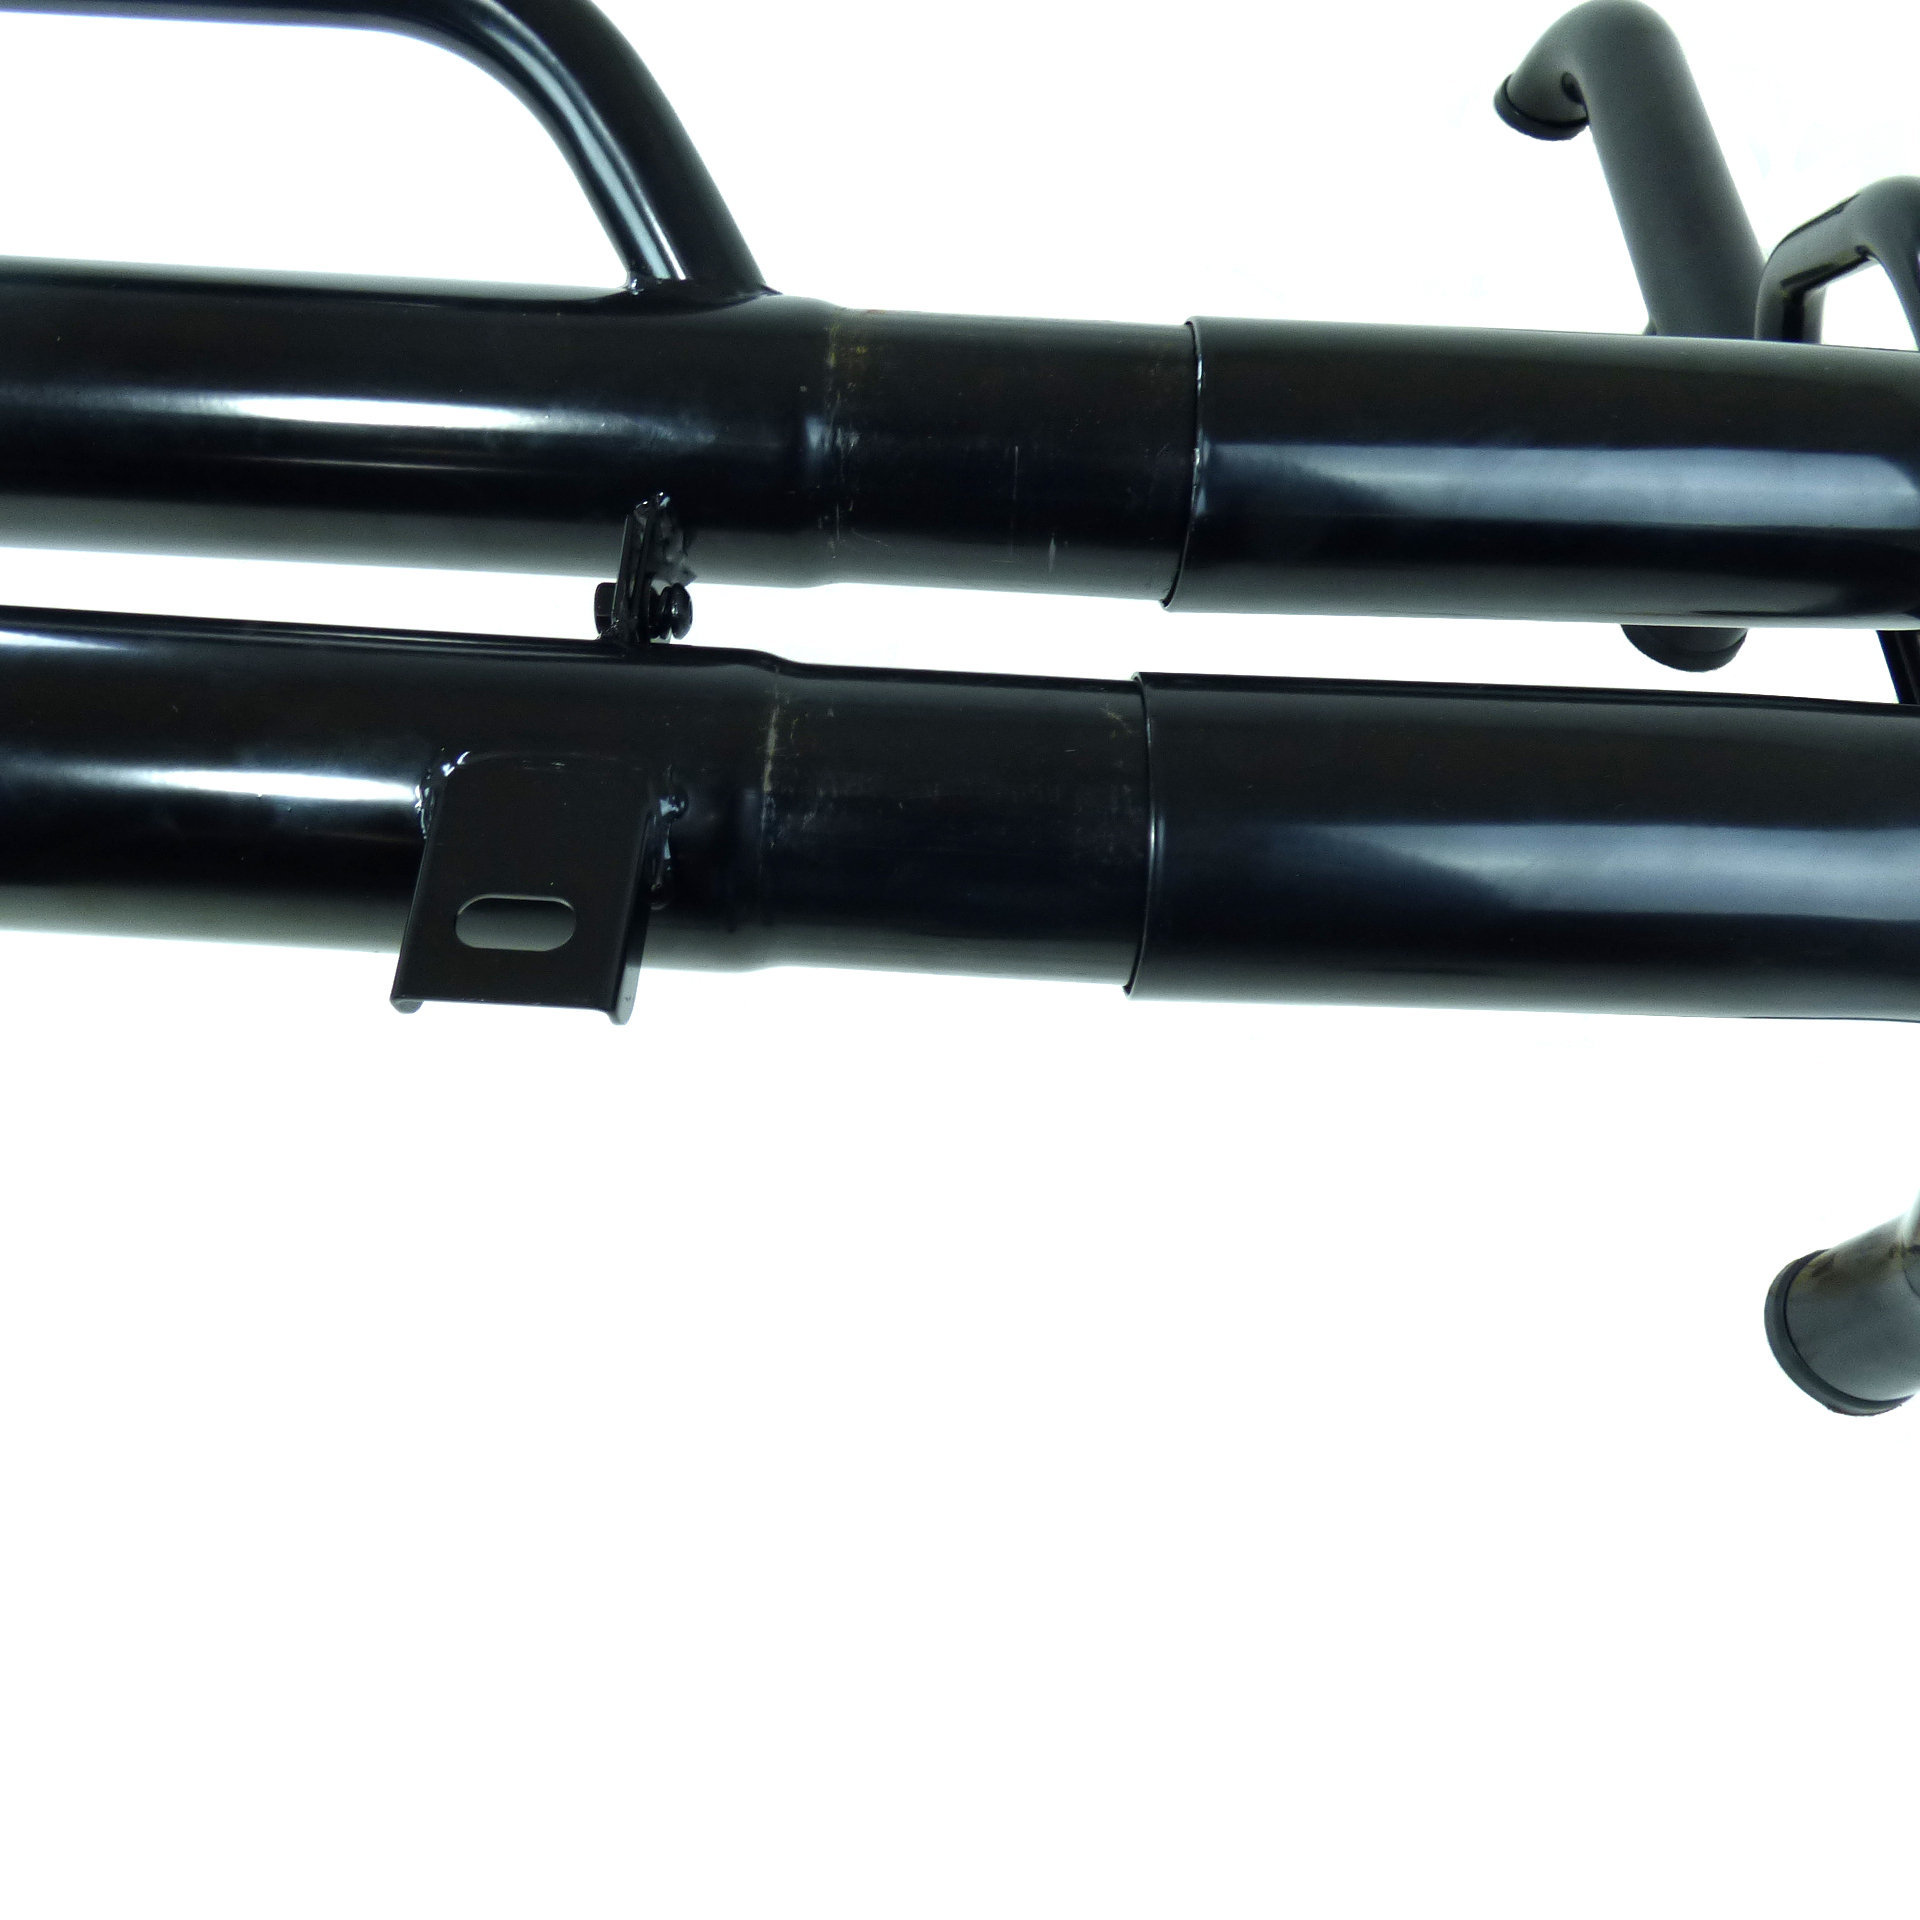 Universal Pickup Roll Bar With Grab Handle Black Powder